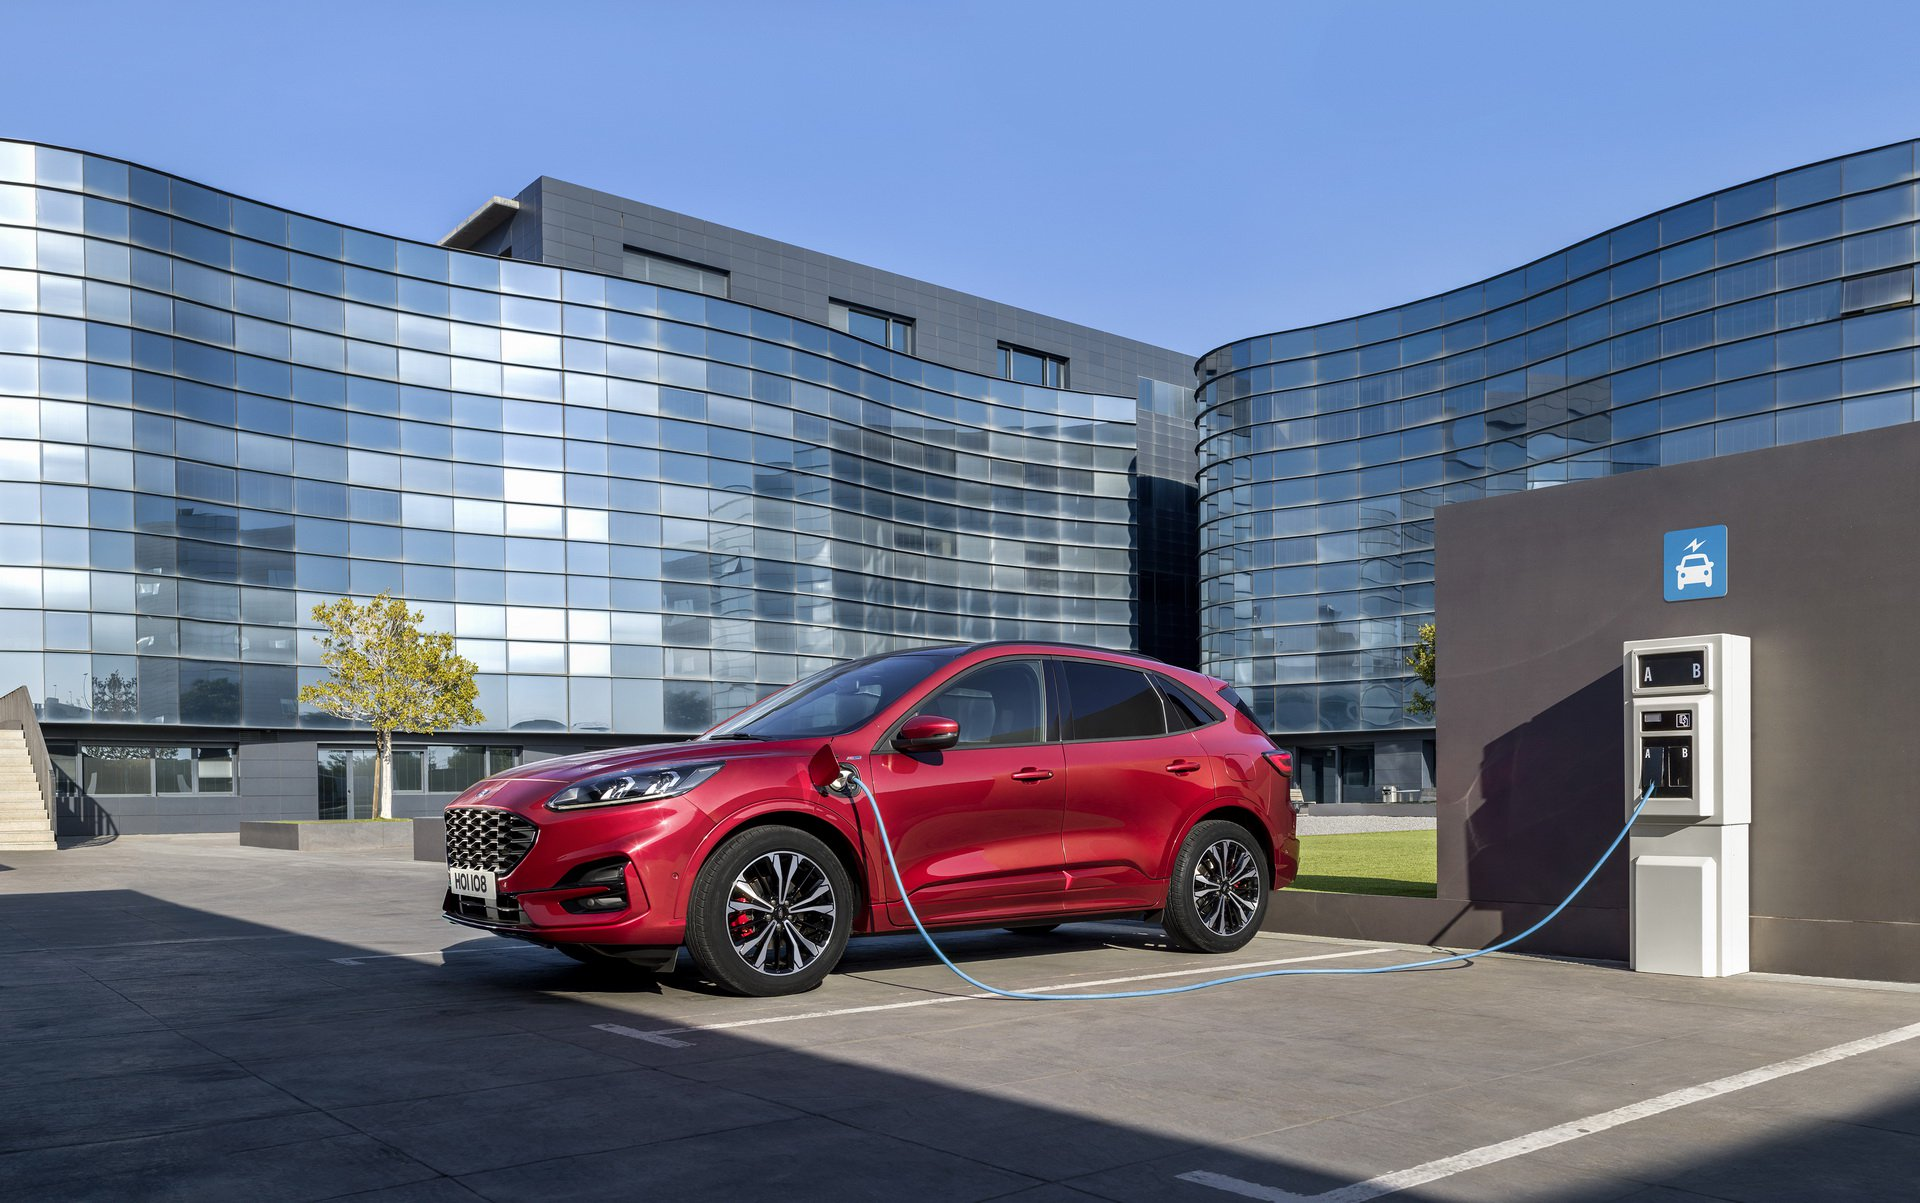 larger-lighter-2020-ford-kuga-debuts-with-three-hybrid-engines_3.jpg